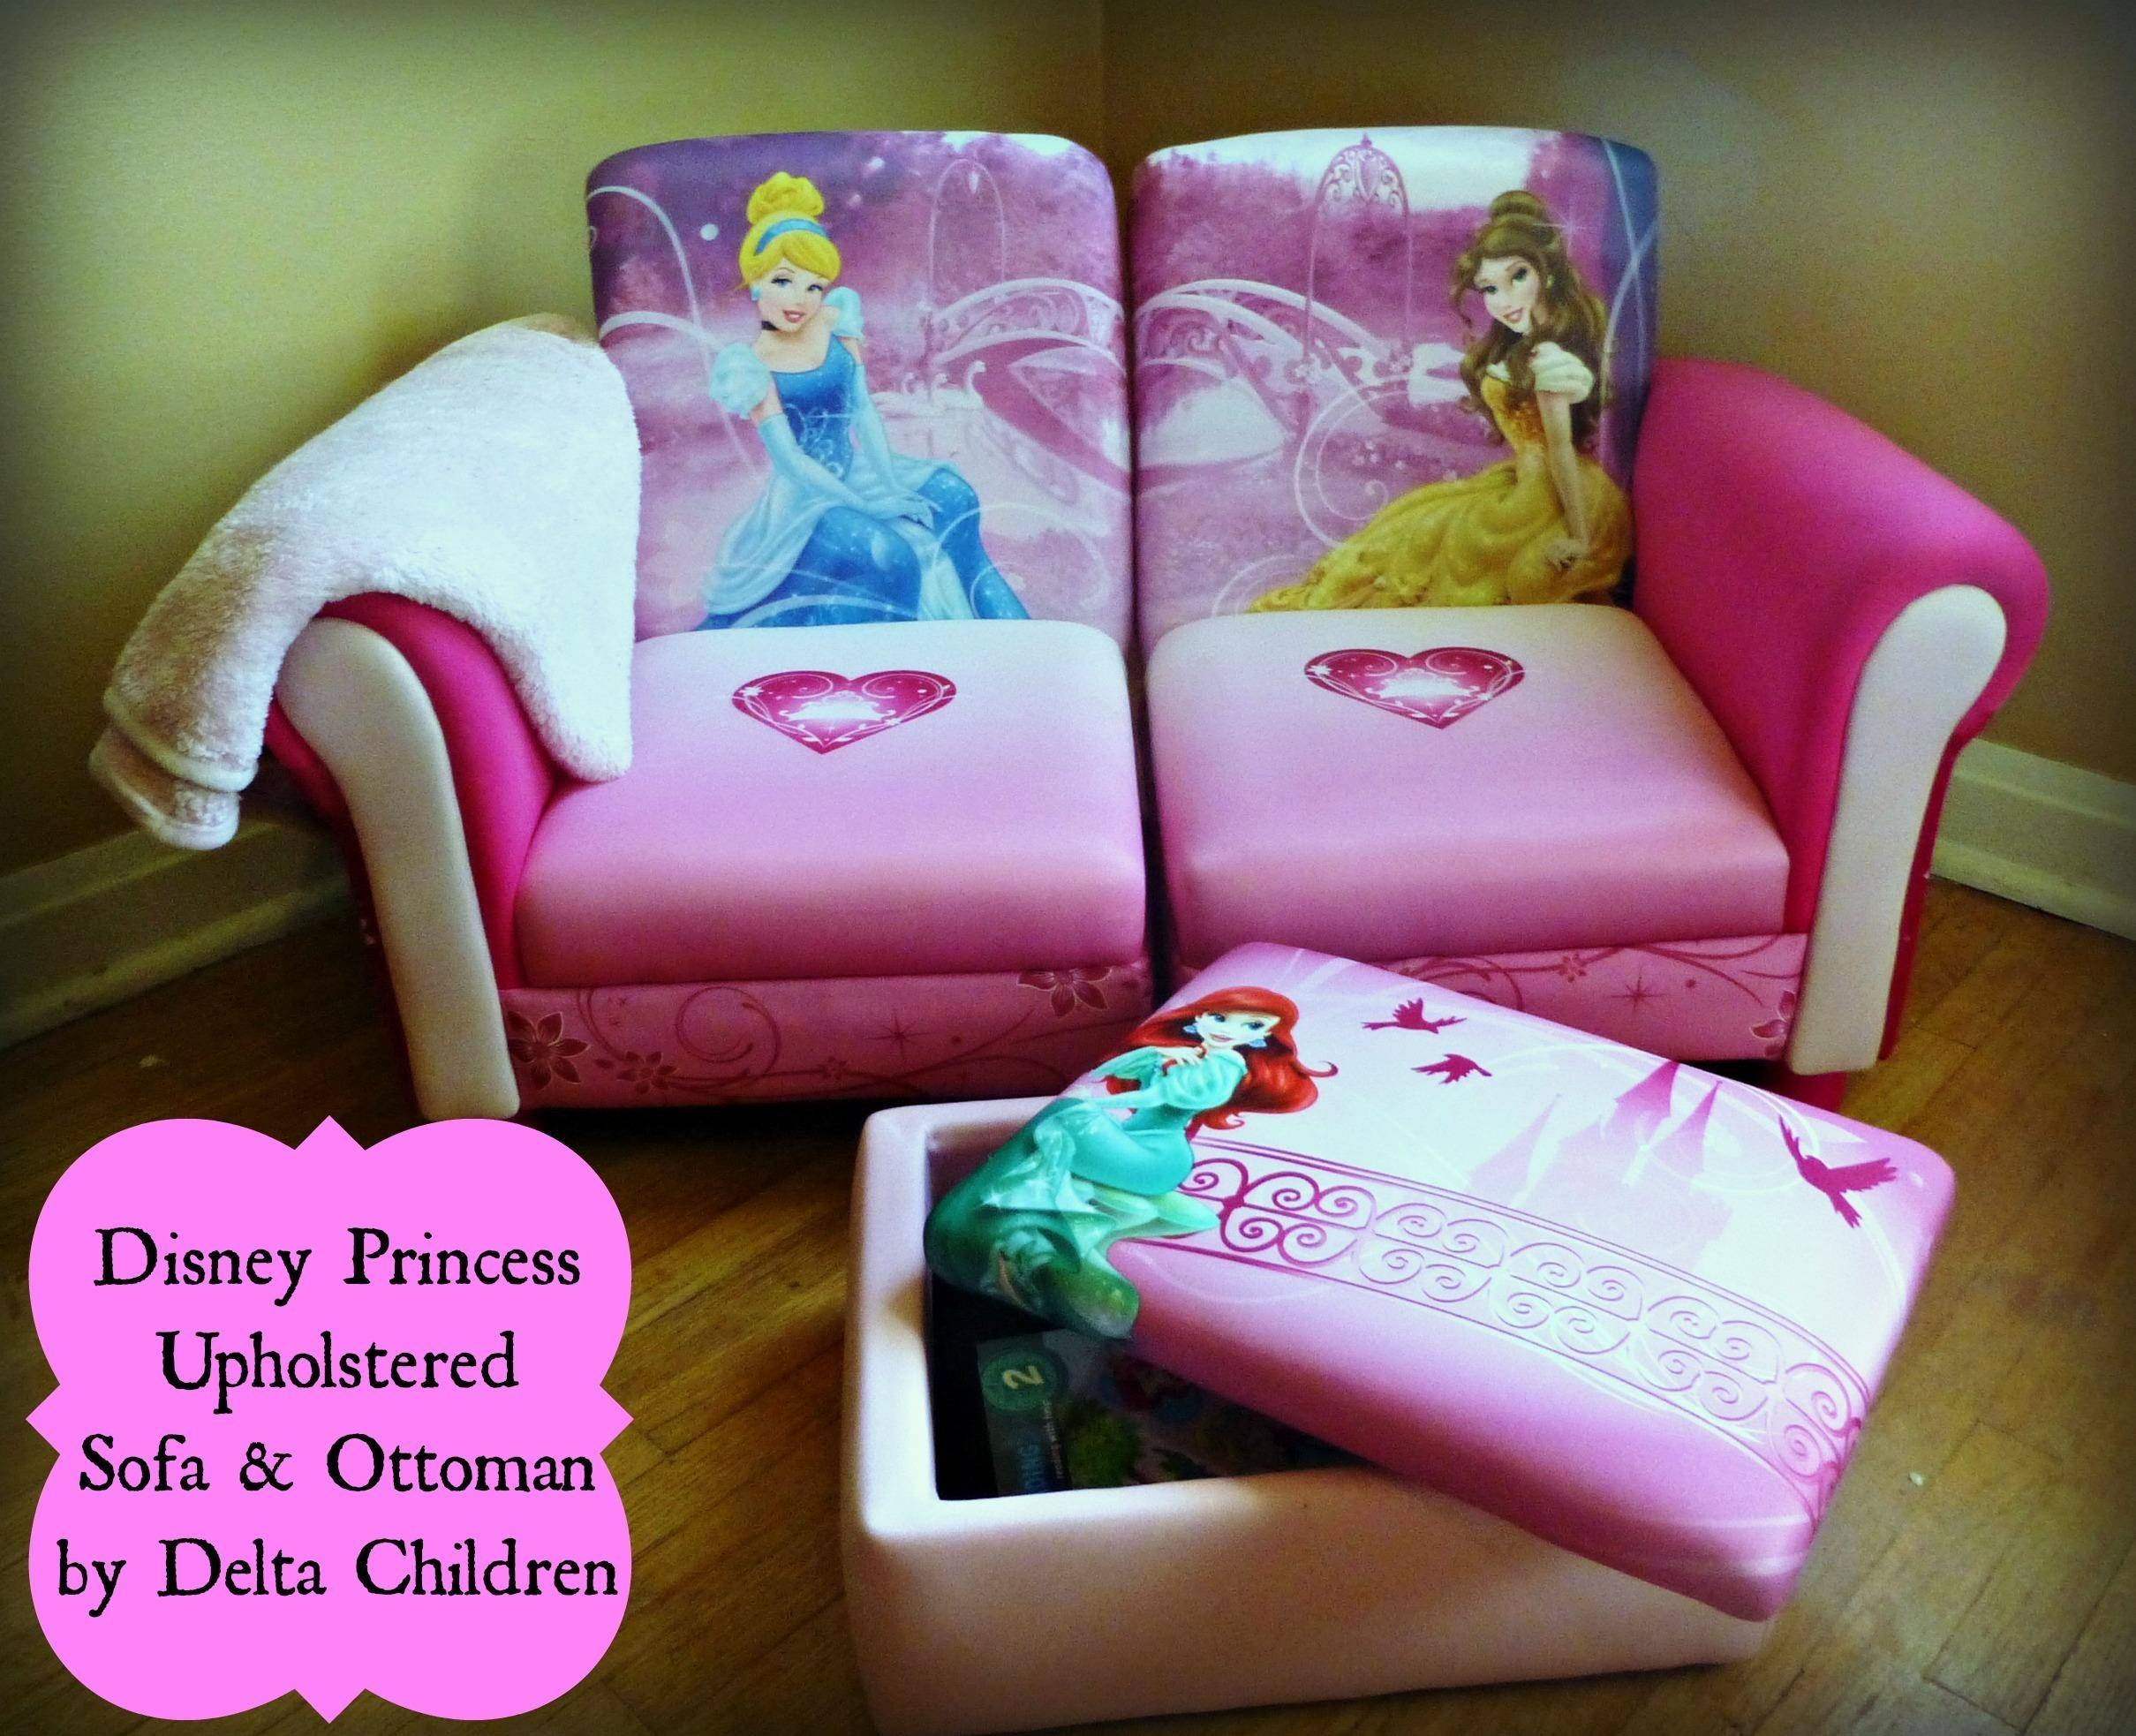 20 Best Collection Of Disney Princess Couches | Sofa Ideas throughout Disney Princess Sofas (Image 1 of 15)